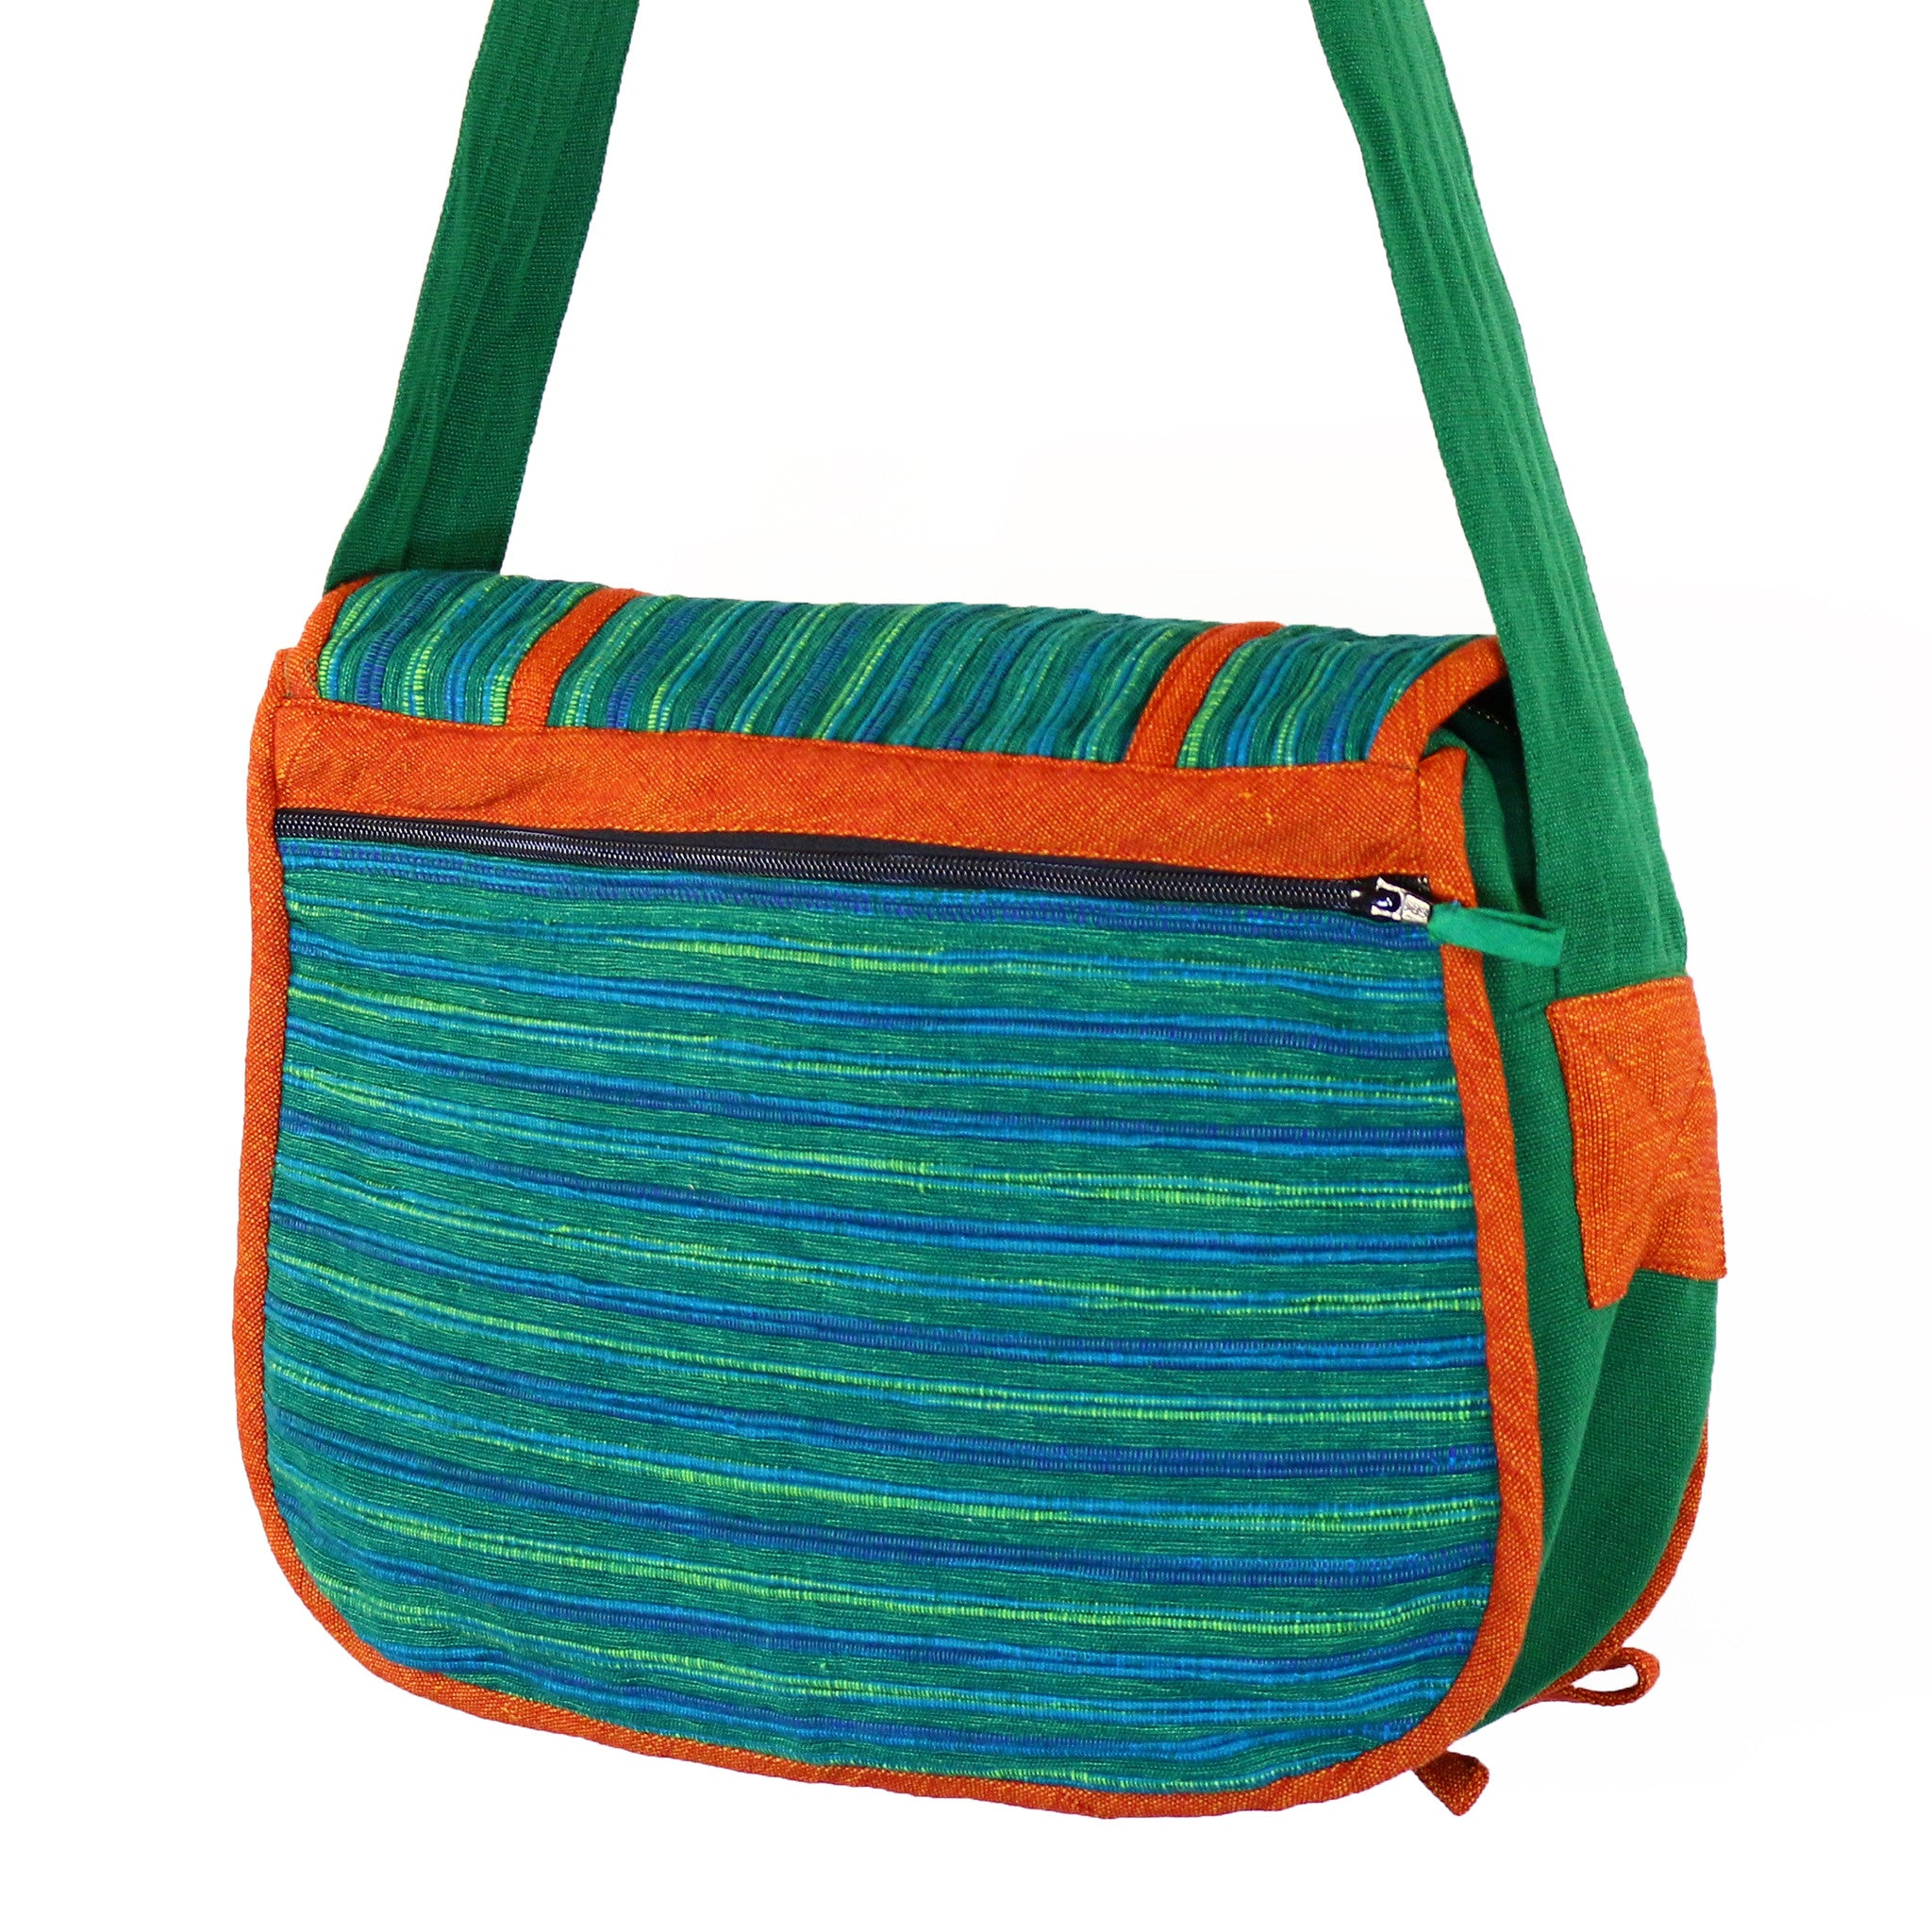 Barefoot Handwoven Messenger Bag - Wintergreen fabric shown